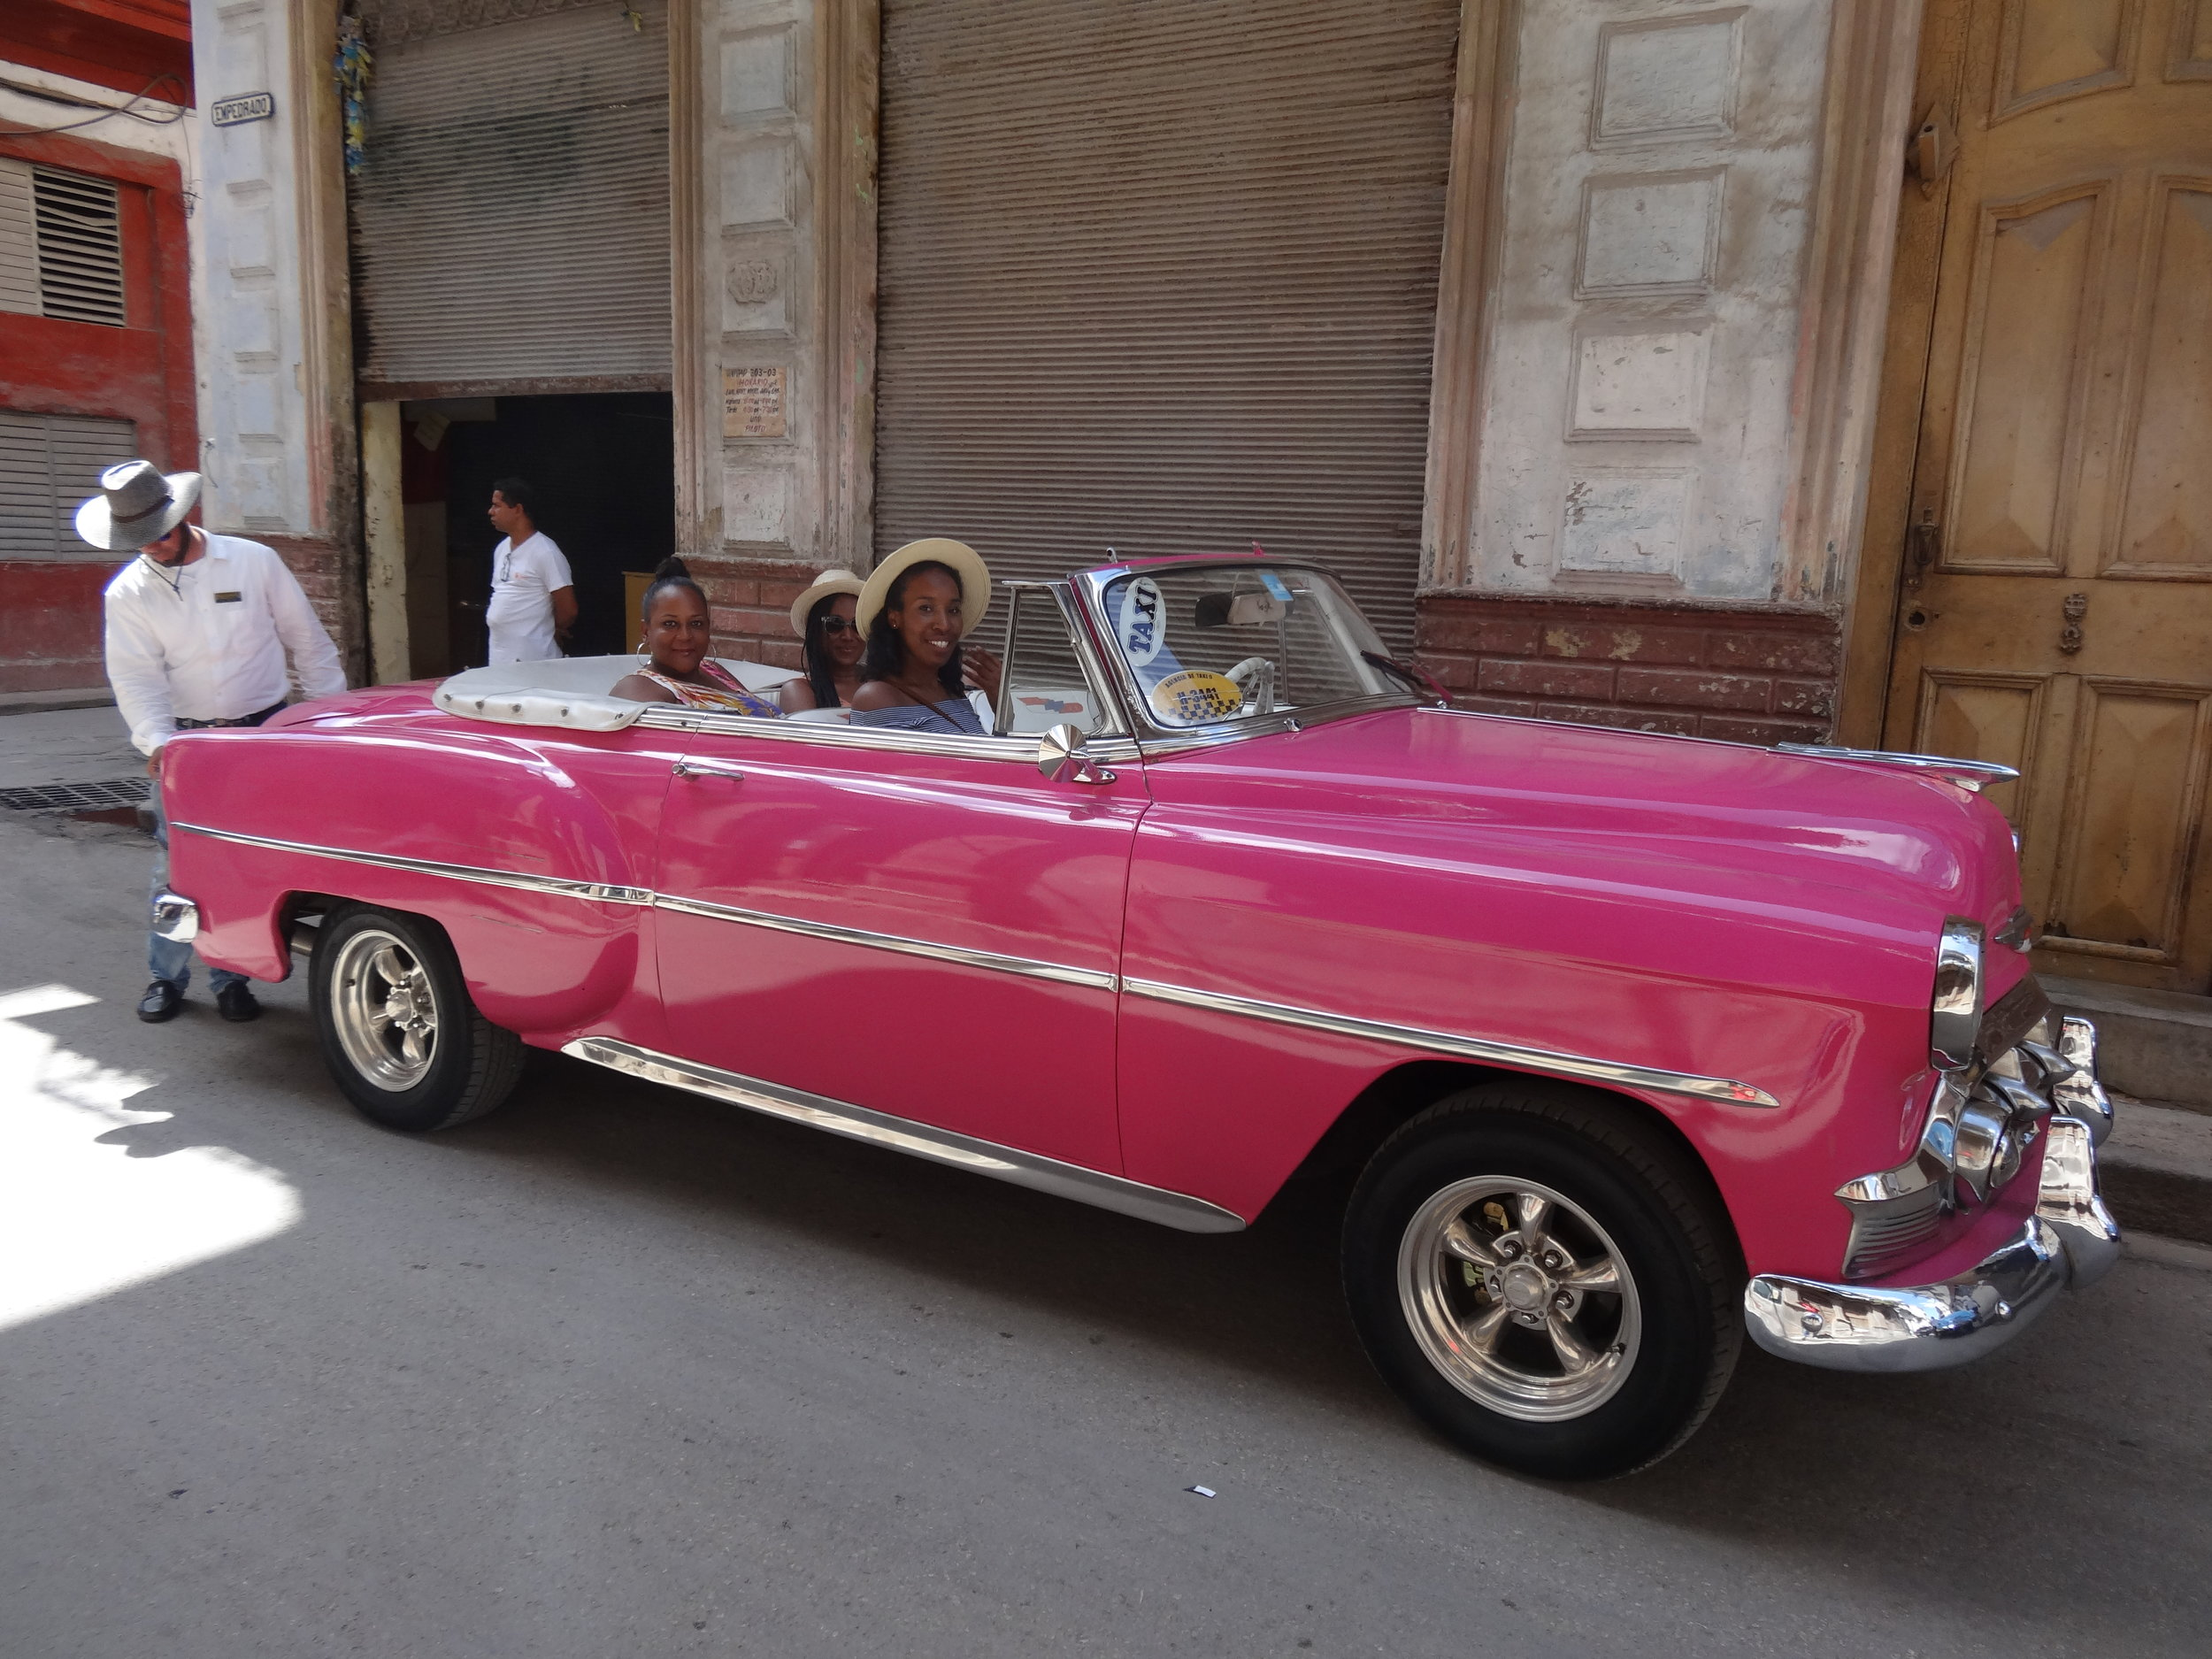 Classic Car Tour of La Habana - Hop into a classic Cuban car to tour and discuss residential neighborhoods. From housing, community stores, parks, and public art - be inspired by the Cuban style of life.